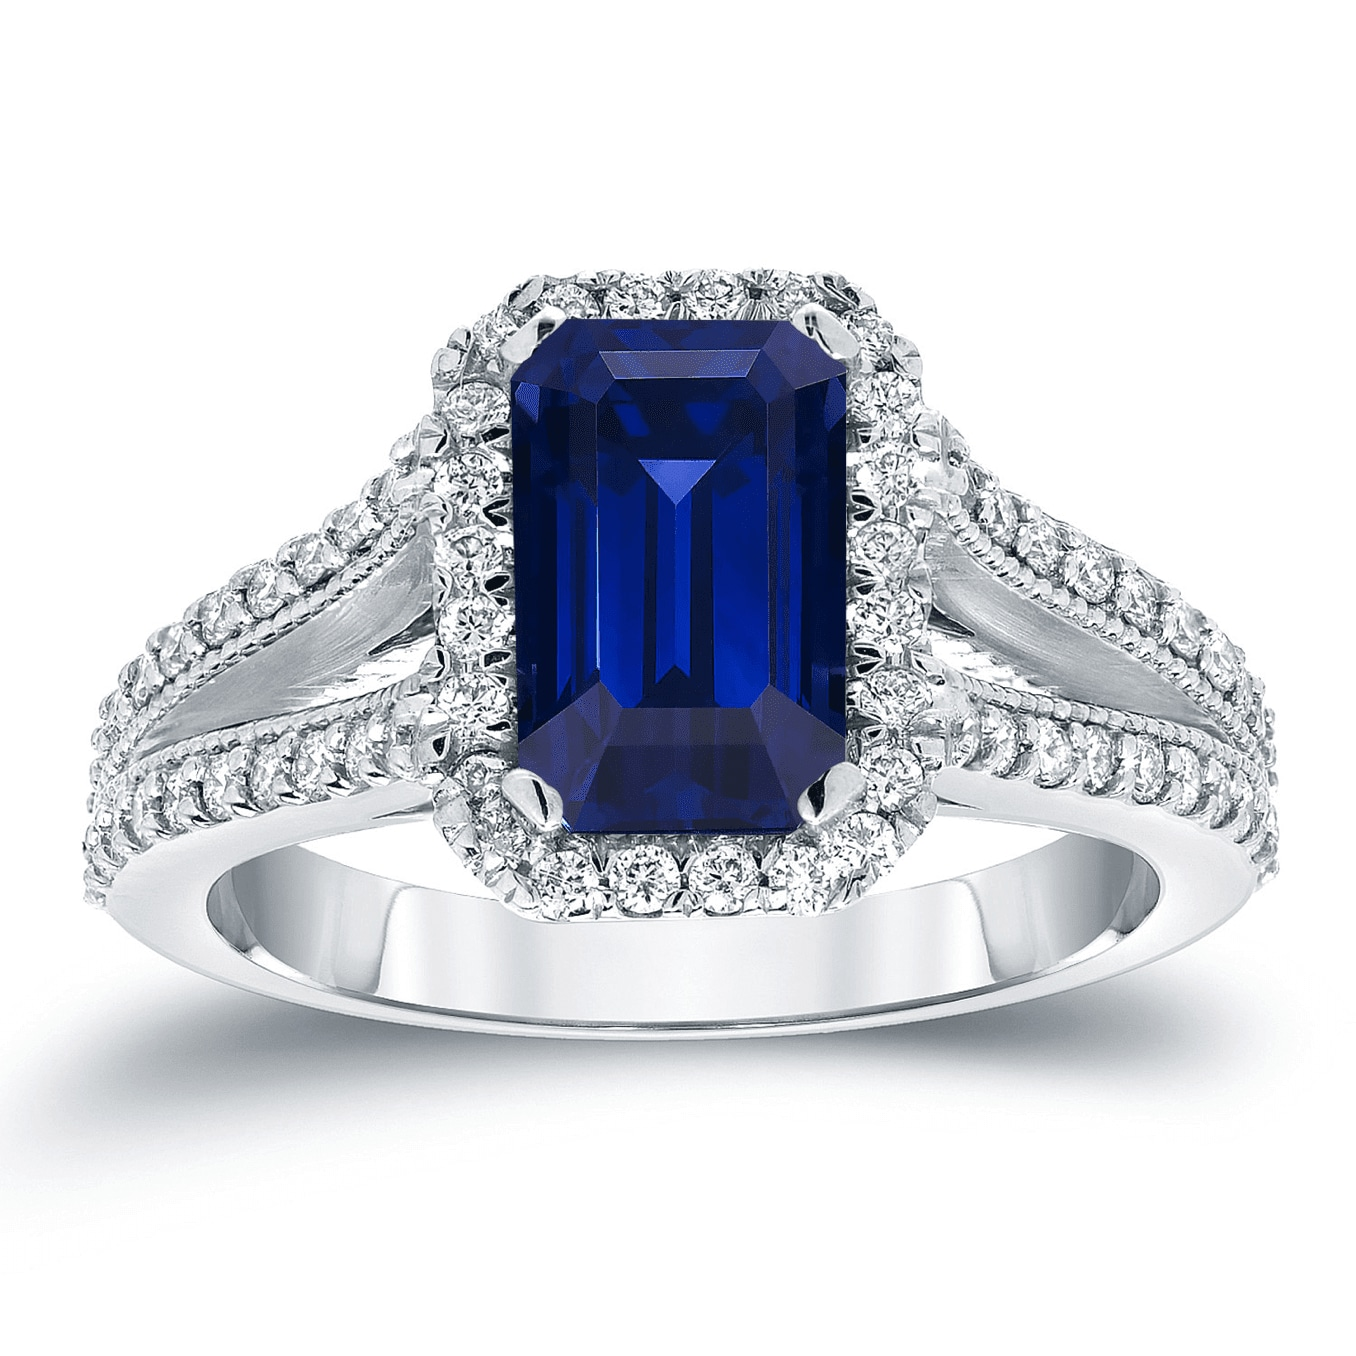 A sapphire stone unqiue engagement ring